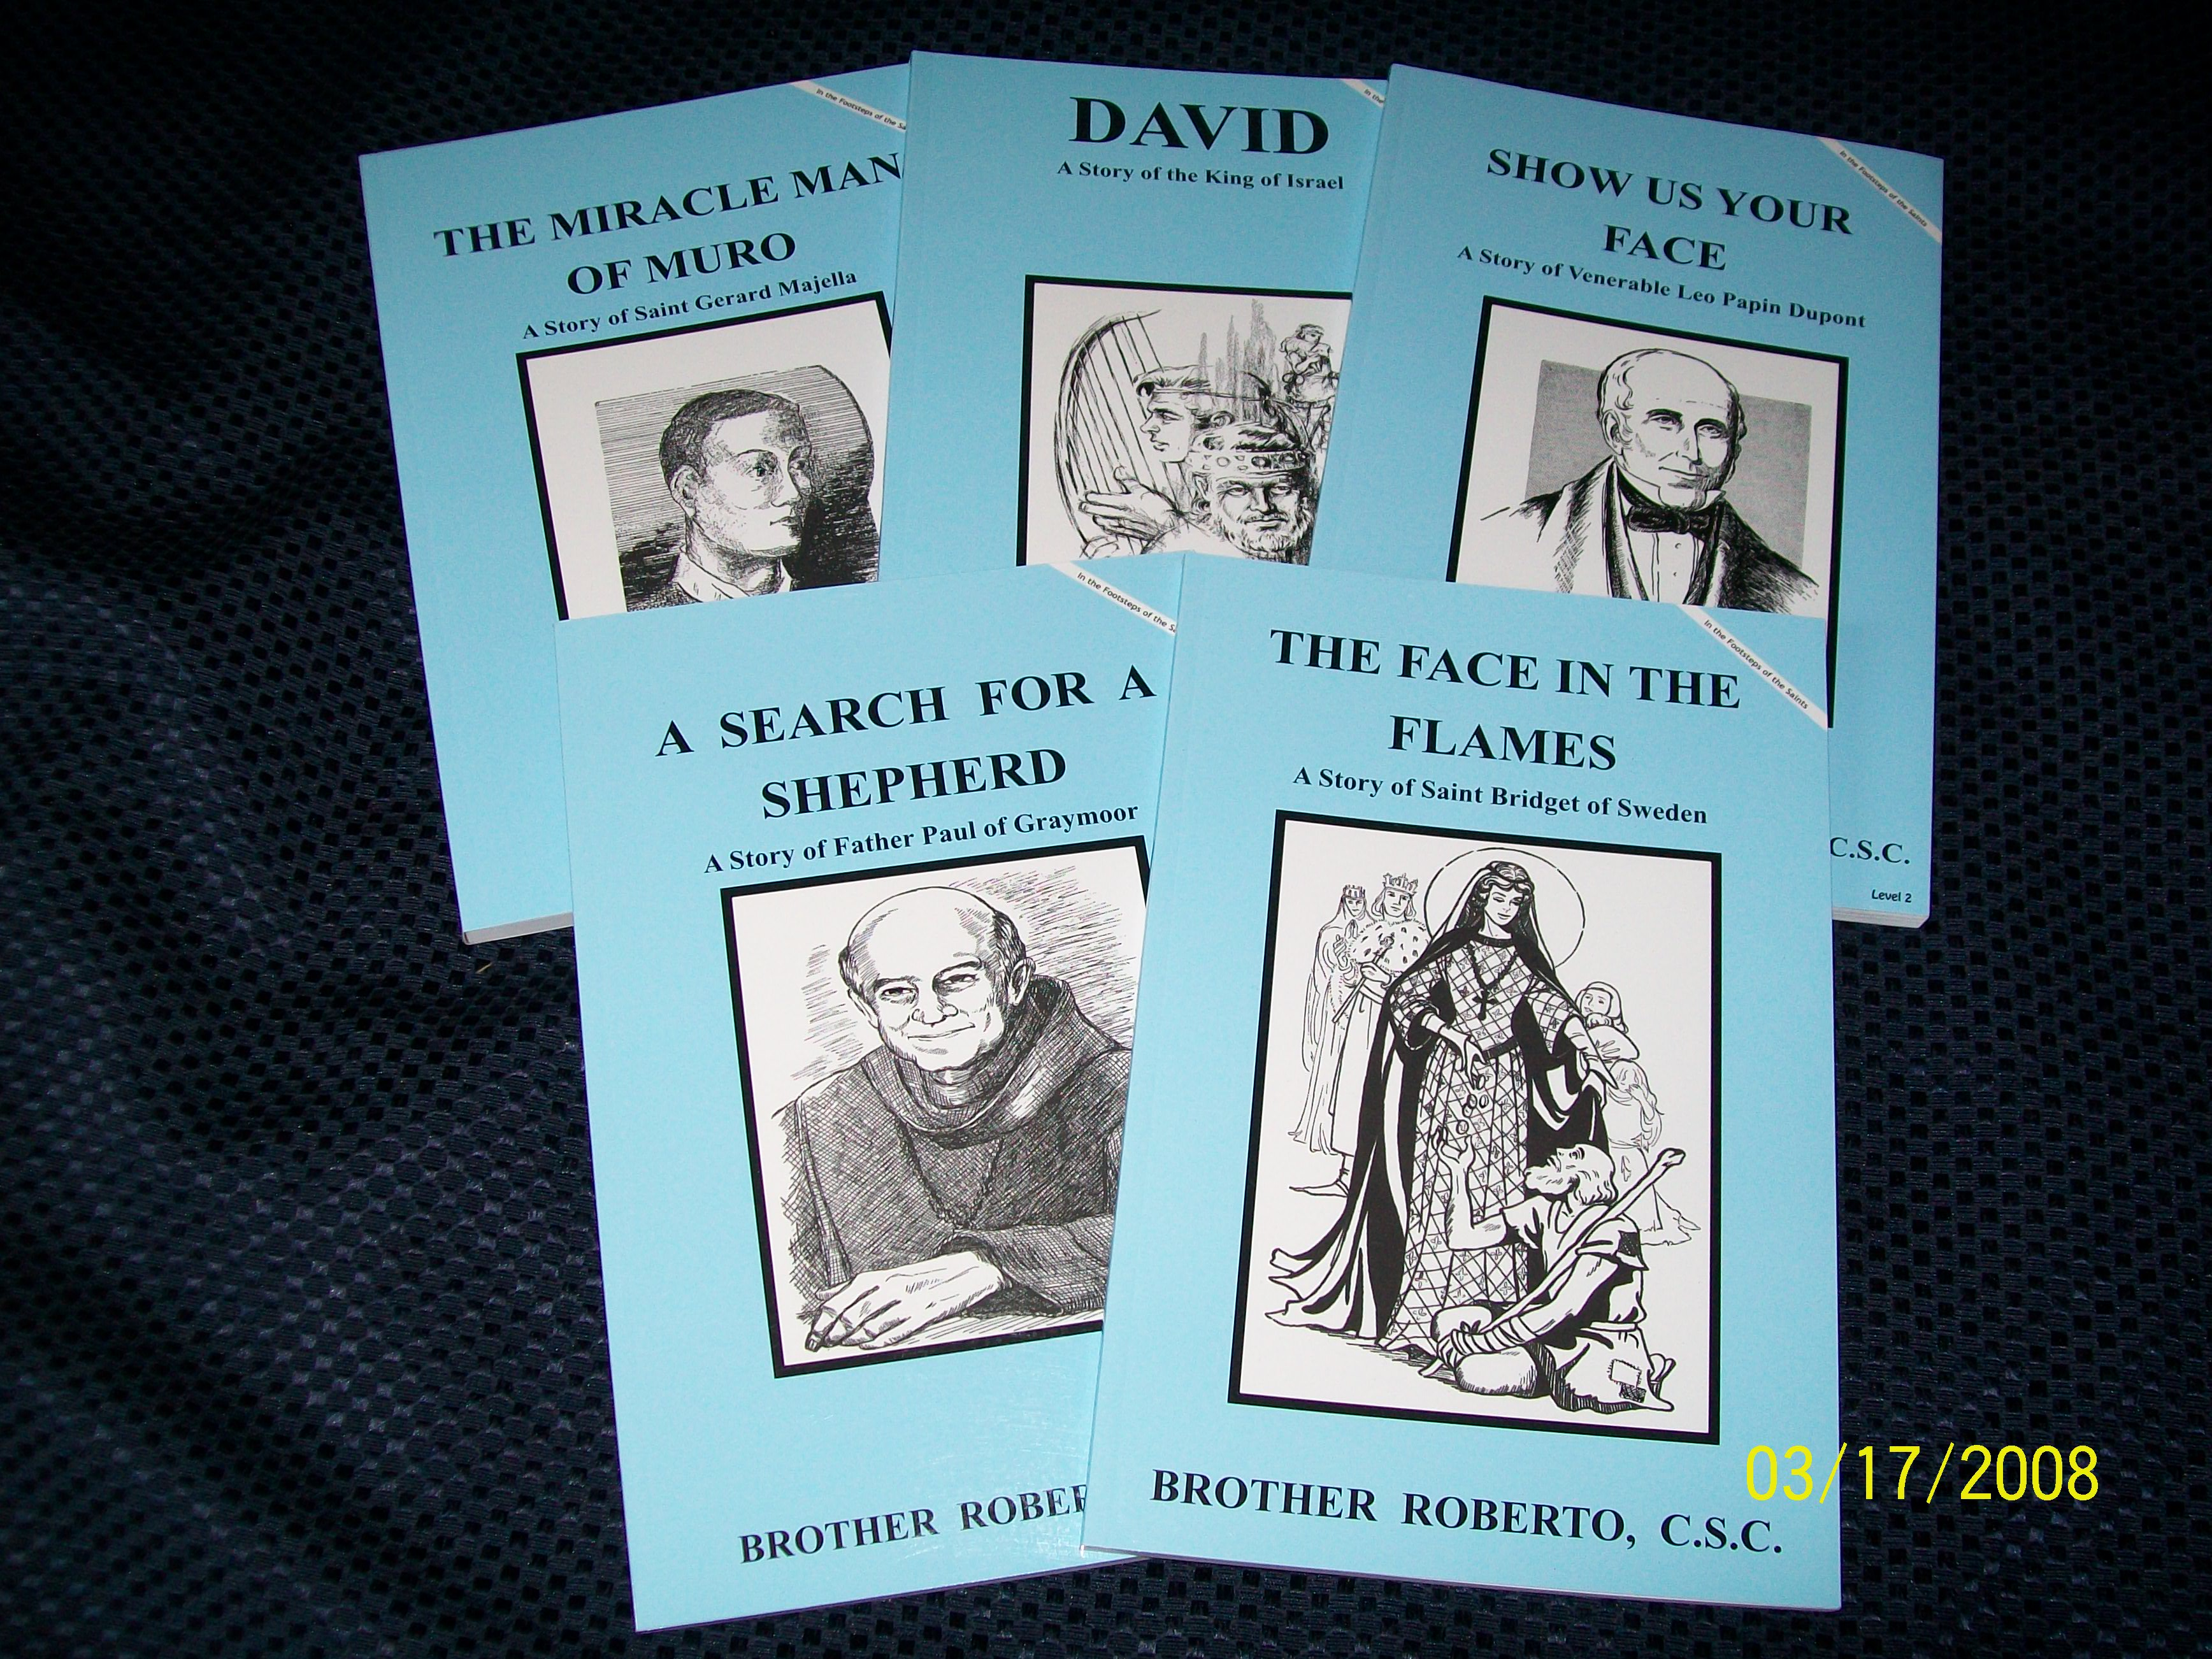 Image for Level 2 Set 5-A Search For A Shepherd, Father Paul of Graymoor, The Face In The Flames, Saint Bridget of Sweden, David, A Story of the King of Israel, Show Us Your Face, Venerable Leo Papin Dupont, The Miracle Man Of Muro, Saint Gerard Majella